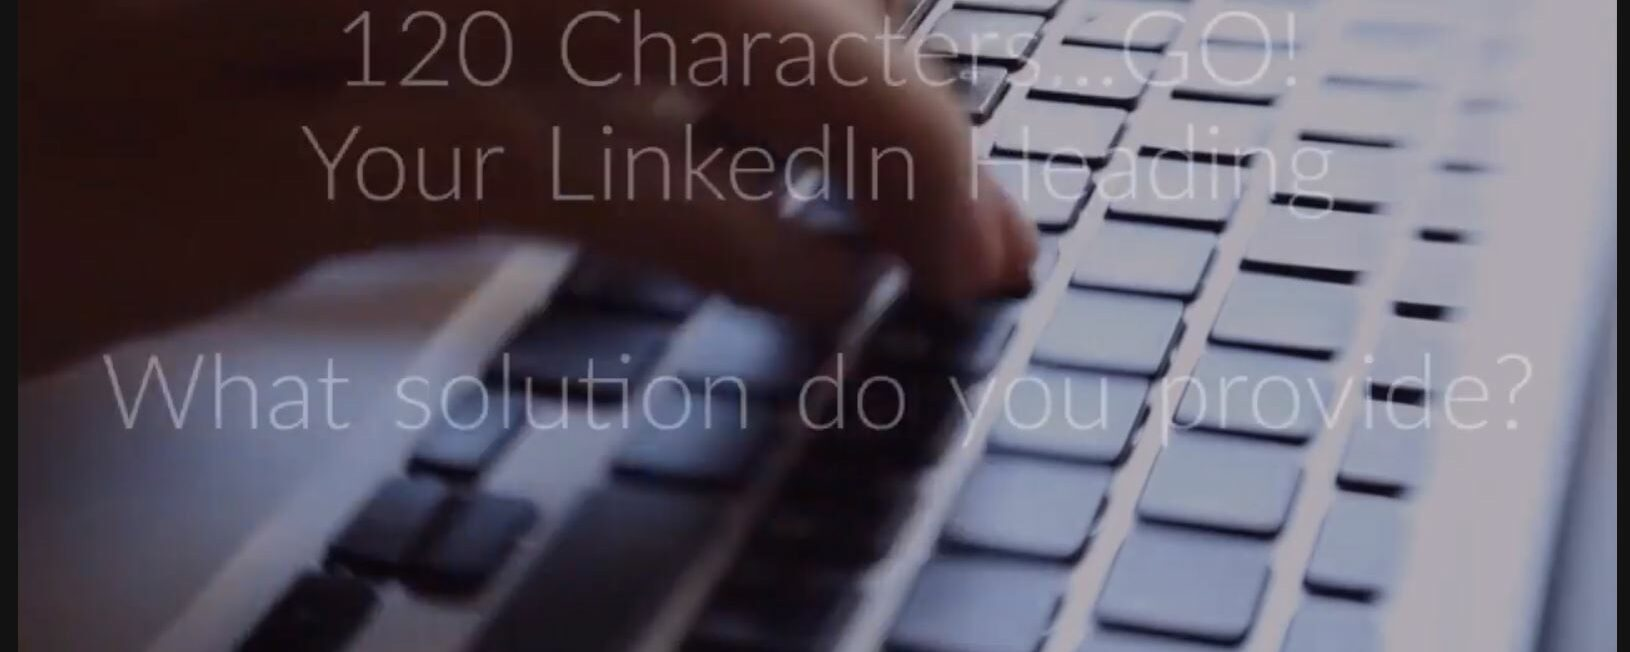 LinkedIn Heading: 120 characters go – Video: 23 seconds